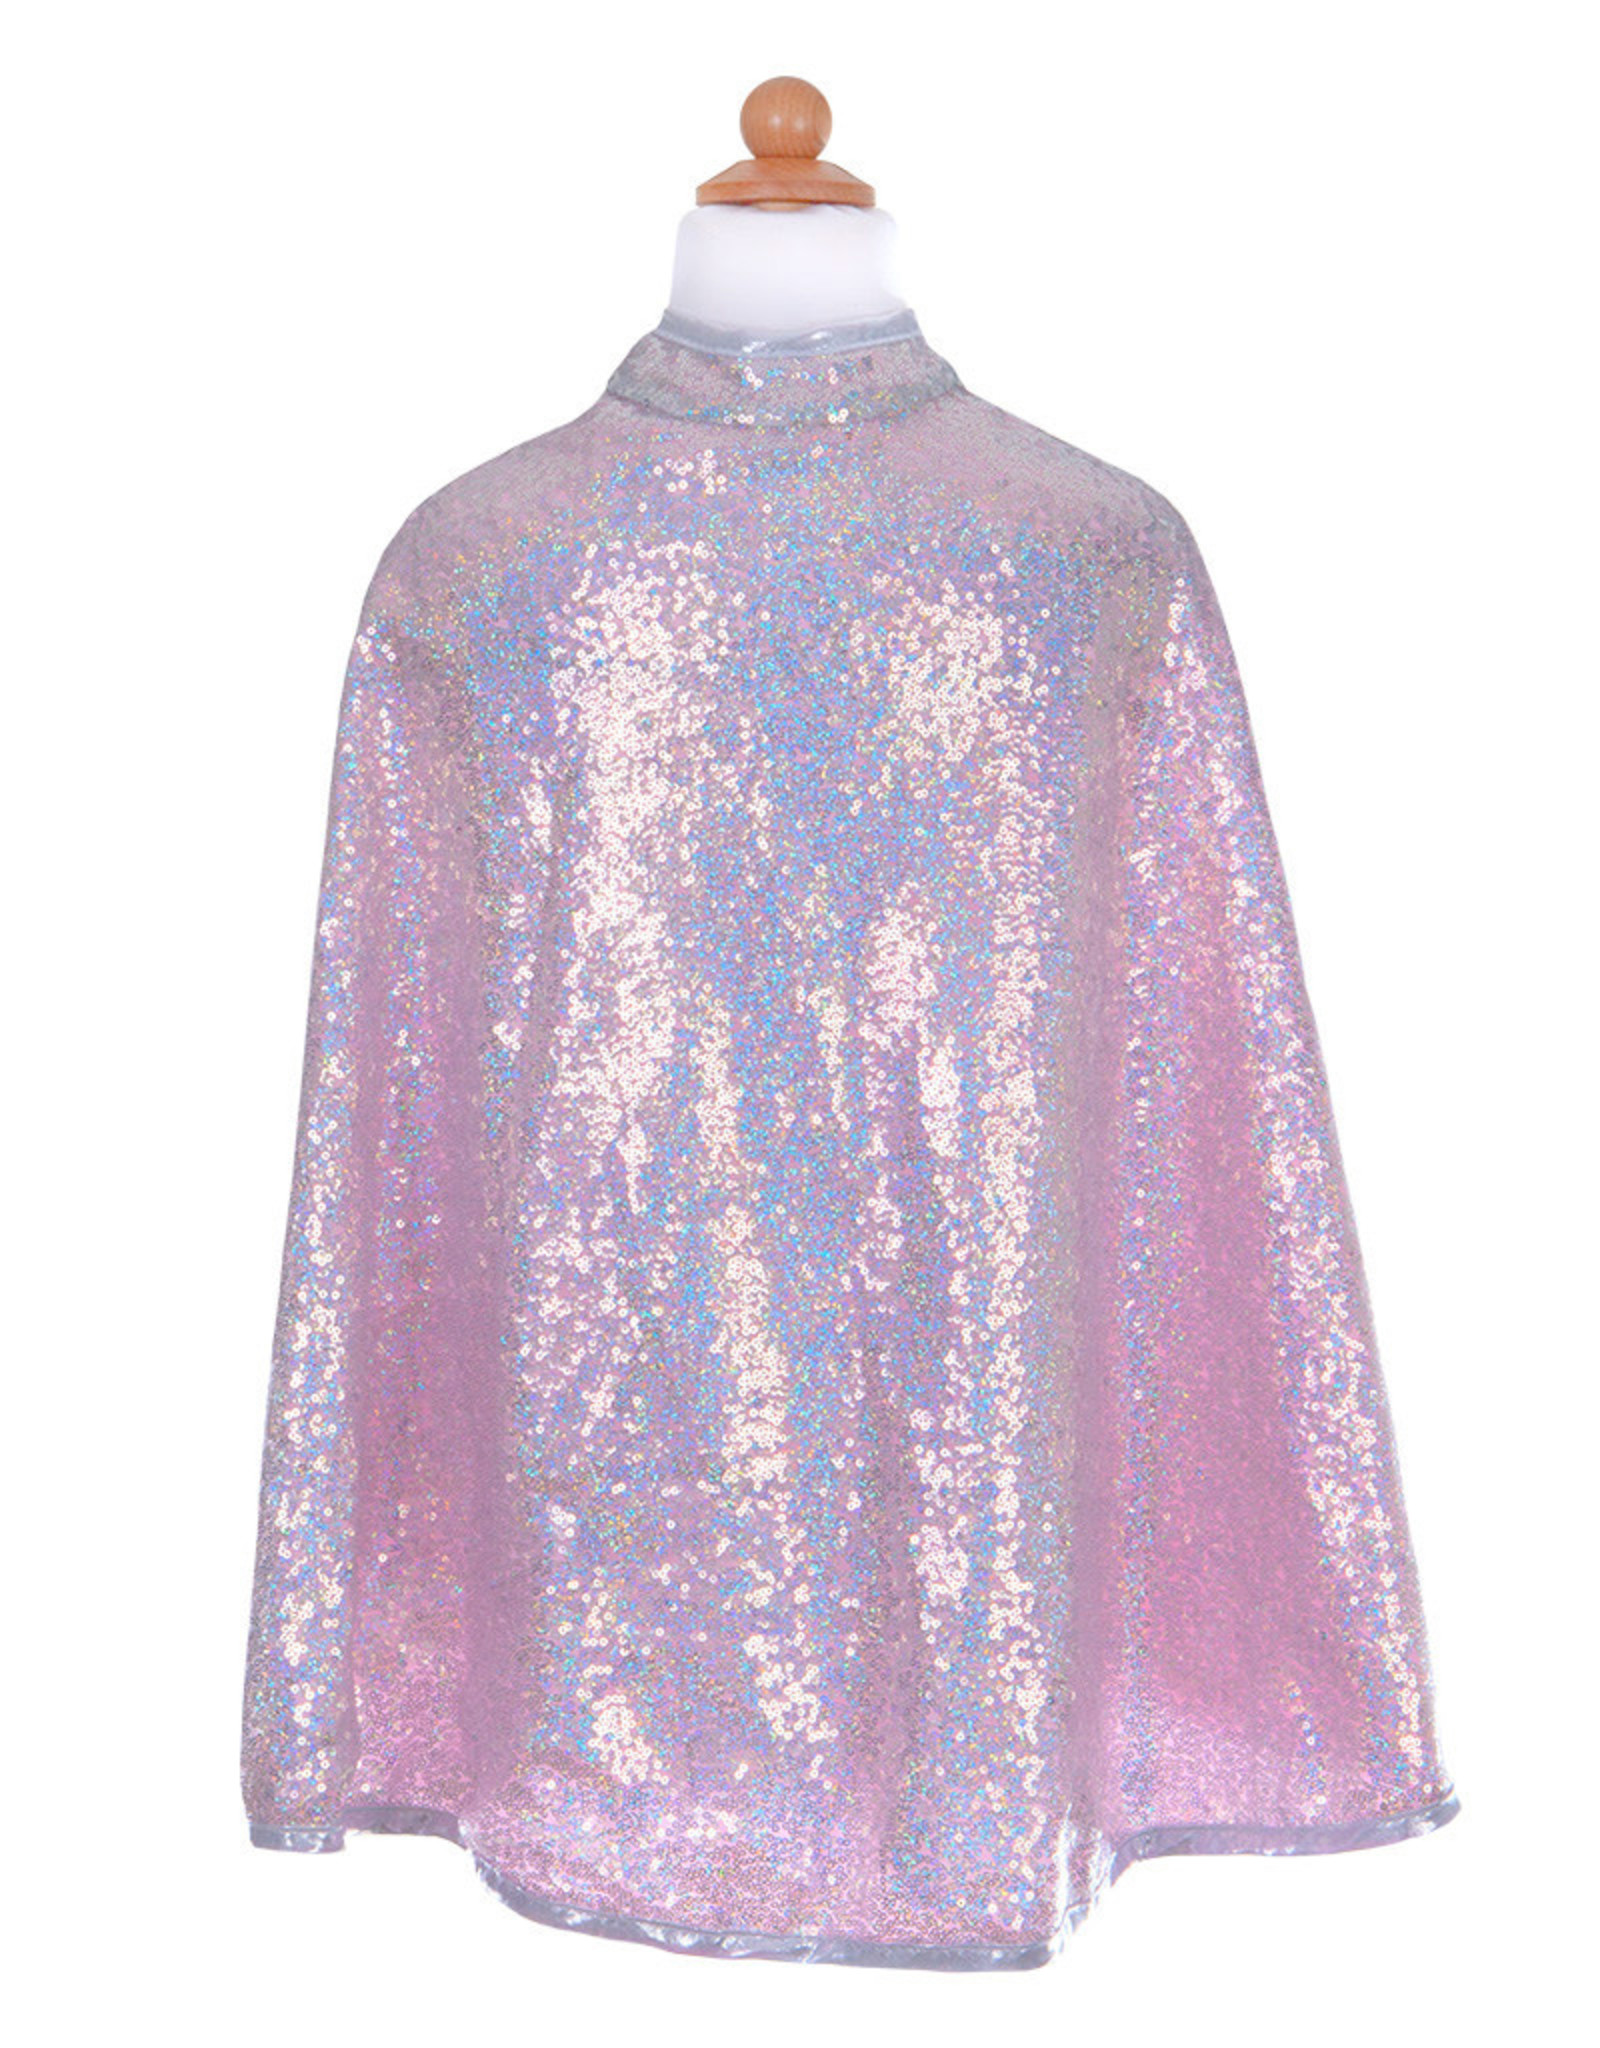 Great Pretenders Silver Sequins Cape, Size 3-4